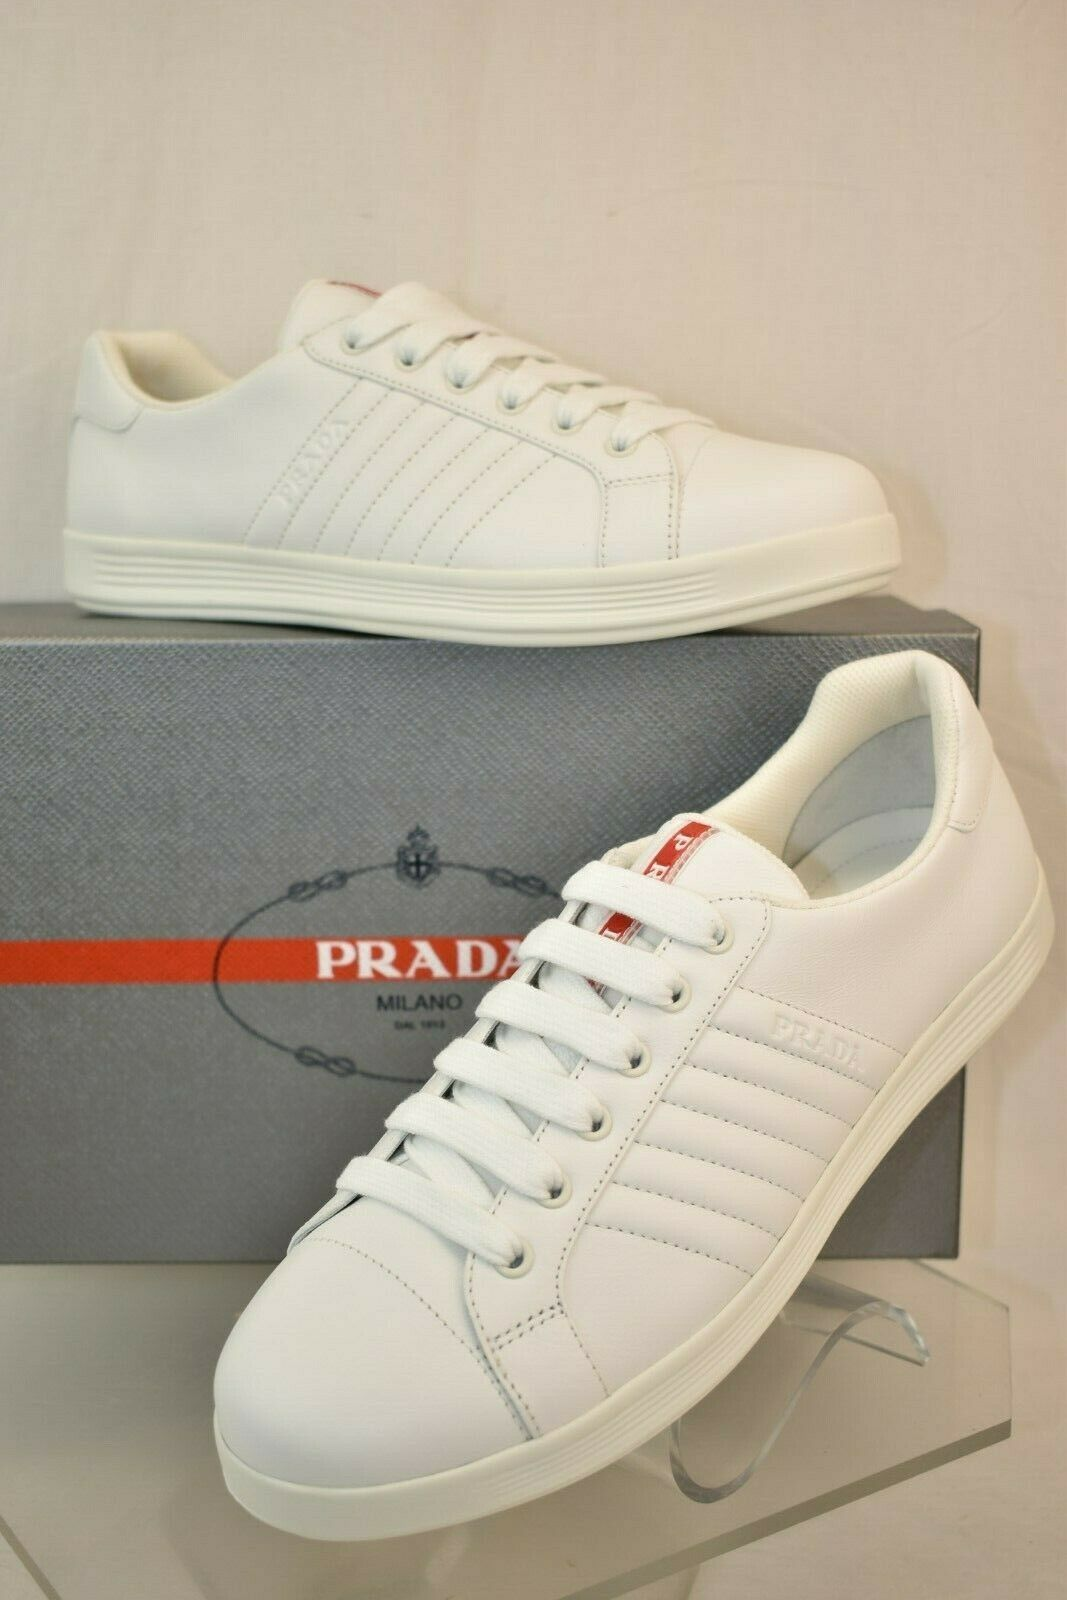 NIB PRADA MEN'S WHITE QUILTED LEATHER LACE UP LOGO LOW TOP SNEAKERS 9 US 10